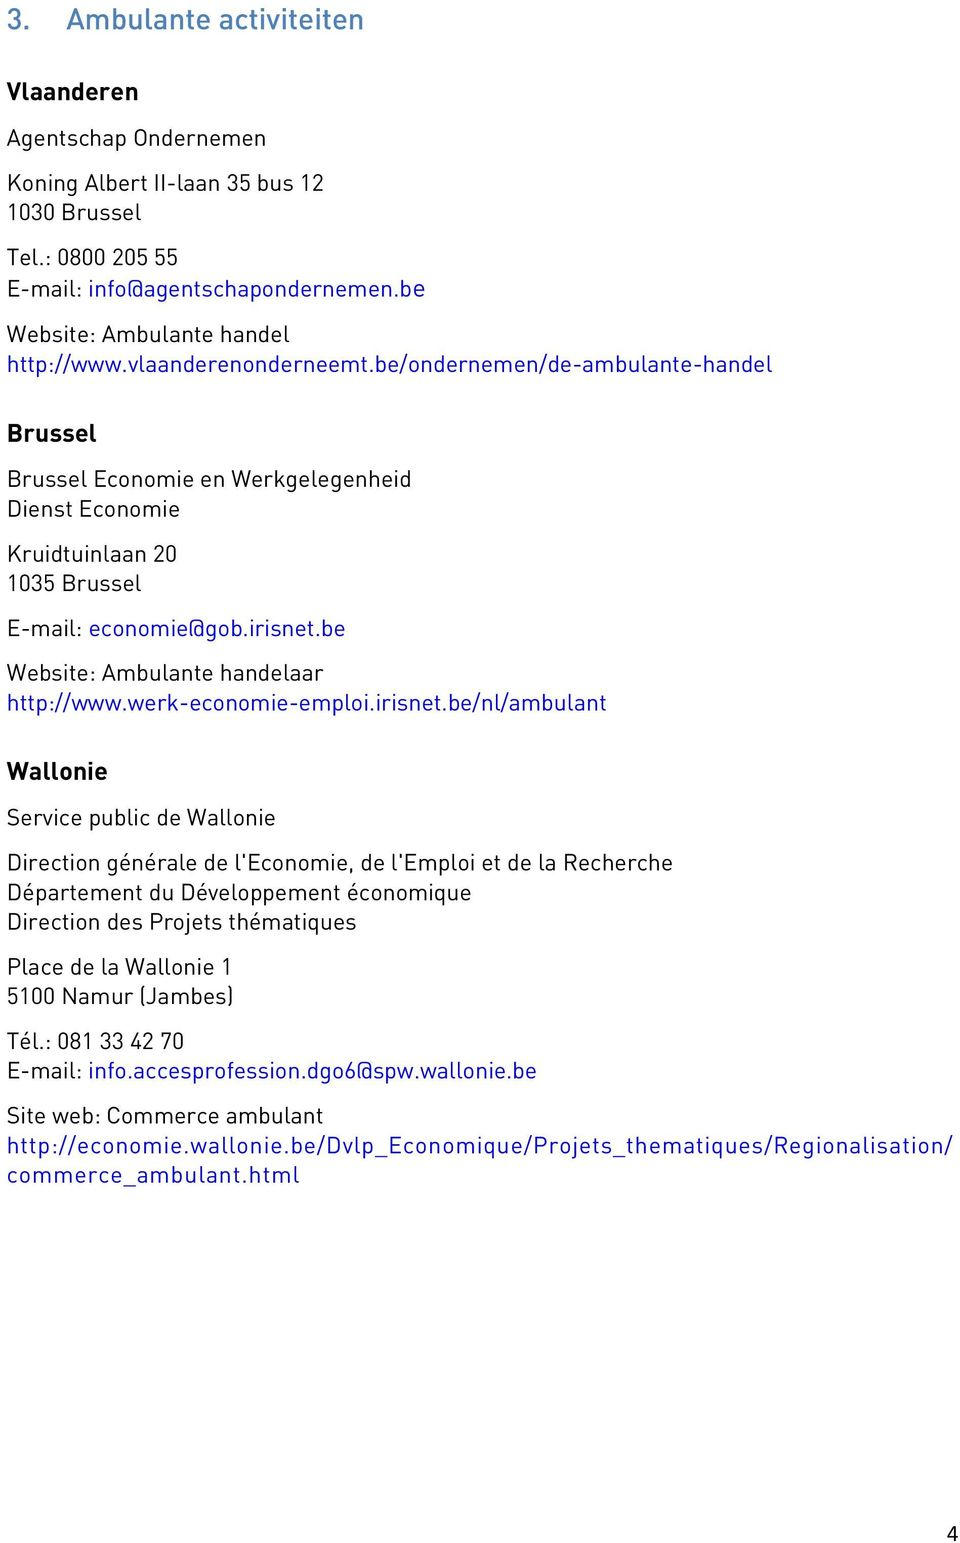 be Website: Ambulante handelaar http://www.werk-economie-emploi.irisnet.